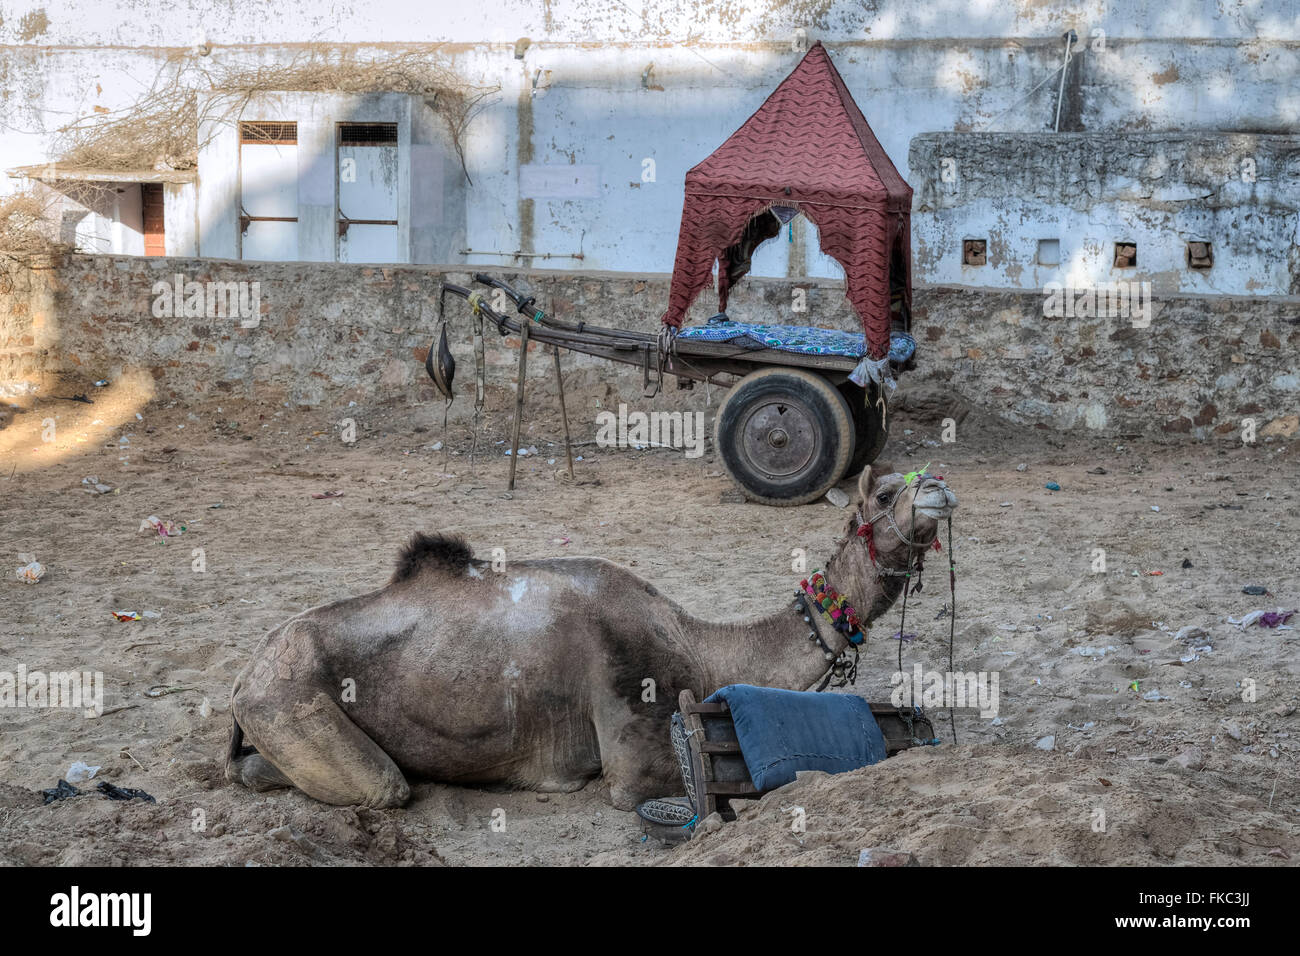 camel with carriage in Pushkar, Ajmer, Rajasthan, India, Asia - Stock Image